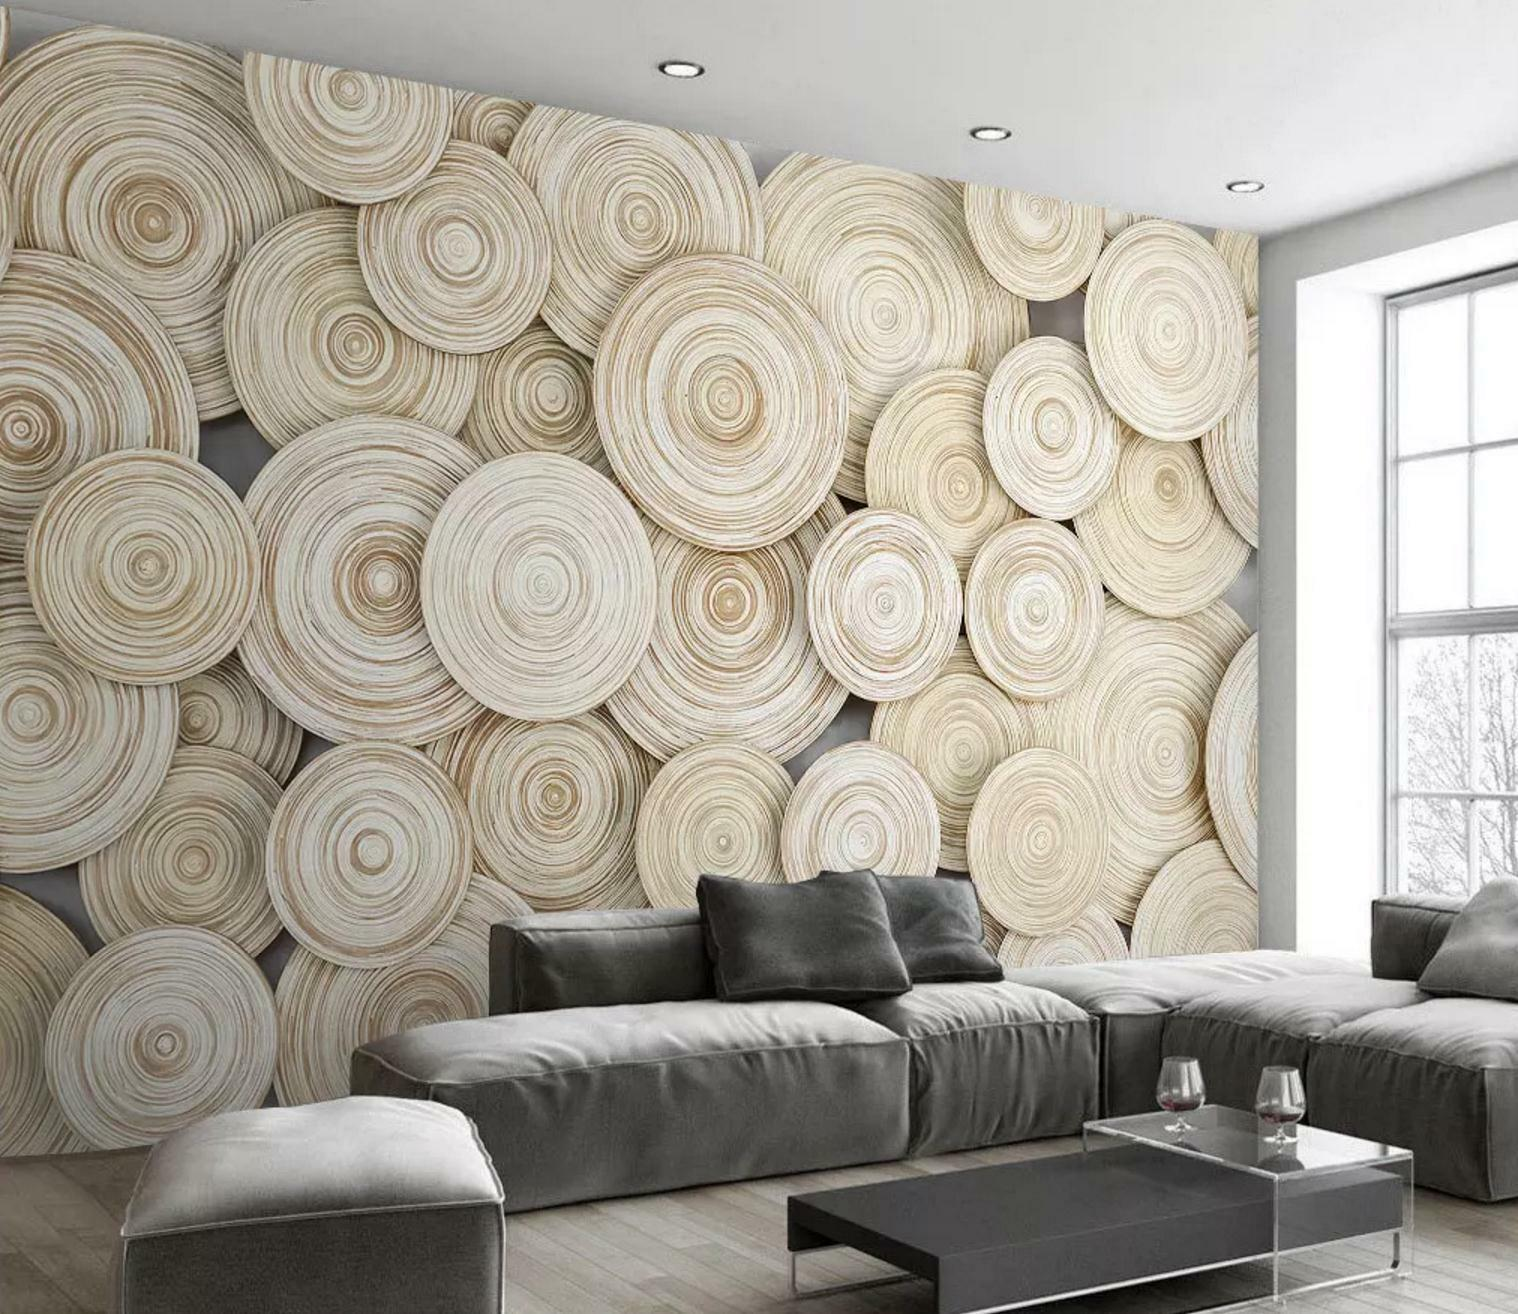 3D Annual Ring 845 Wall Paper Exclusive MXY Wallpaper Mural Decal Indoor Wall AJ